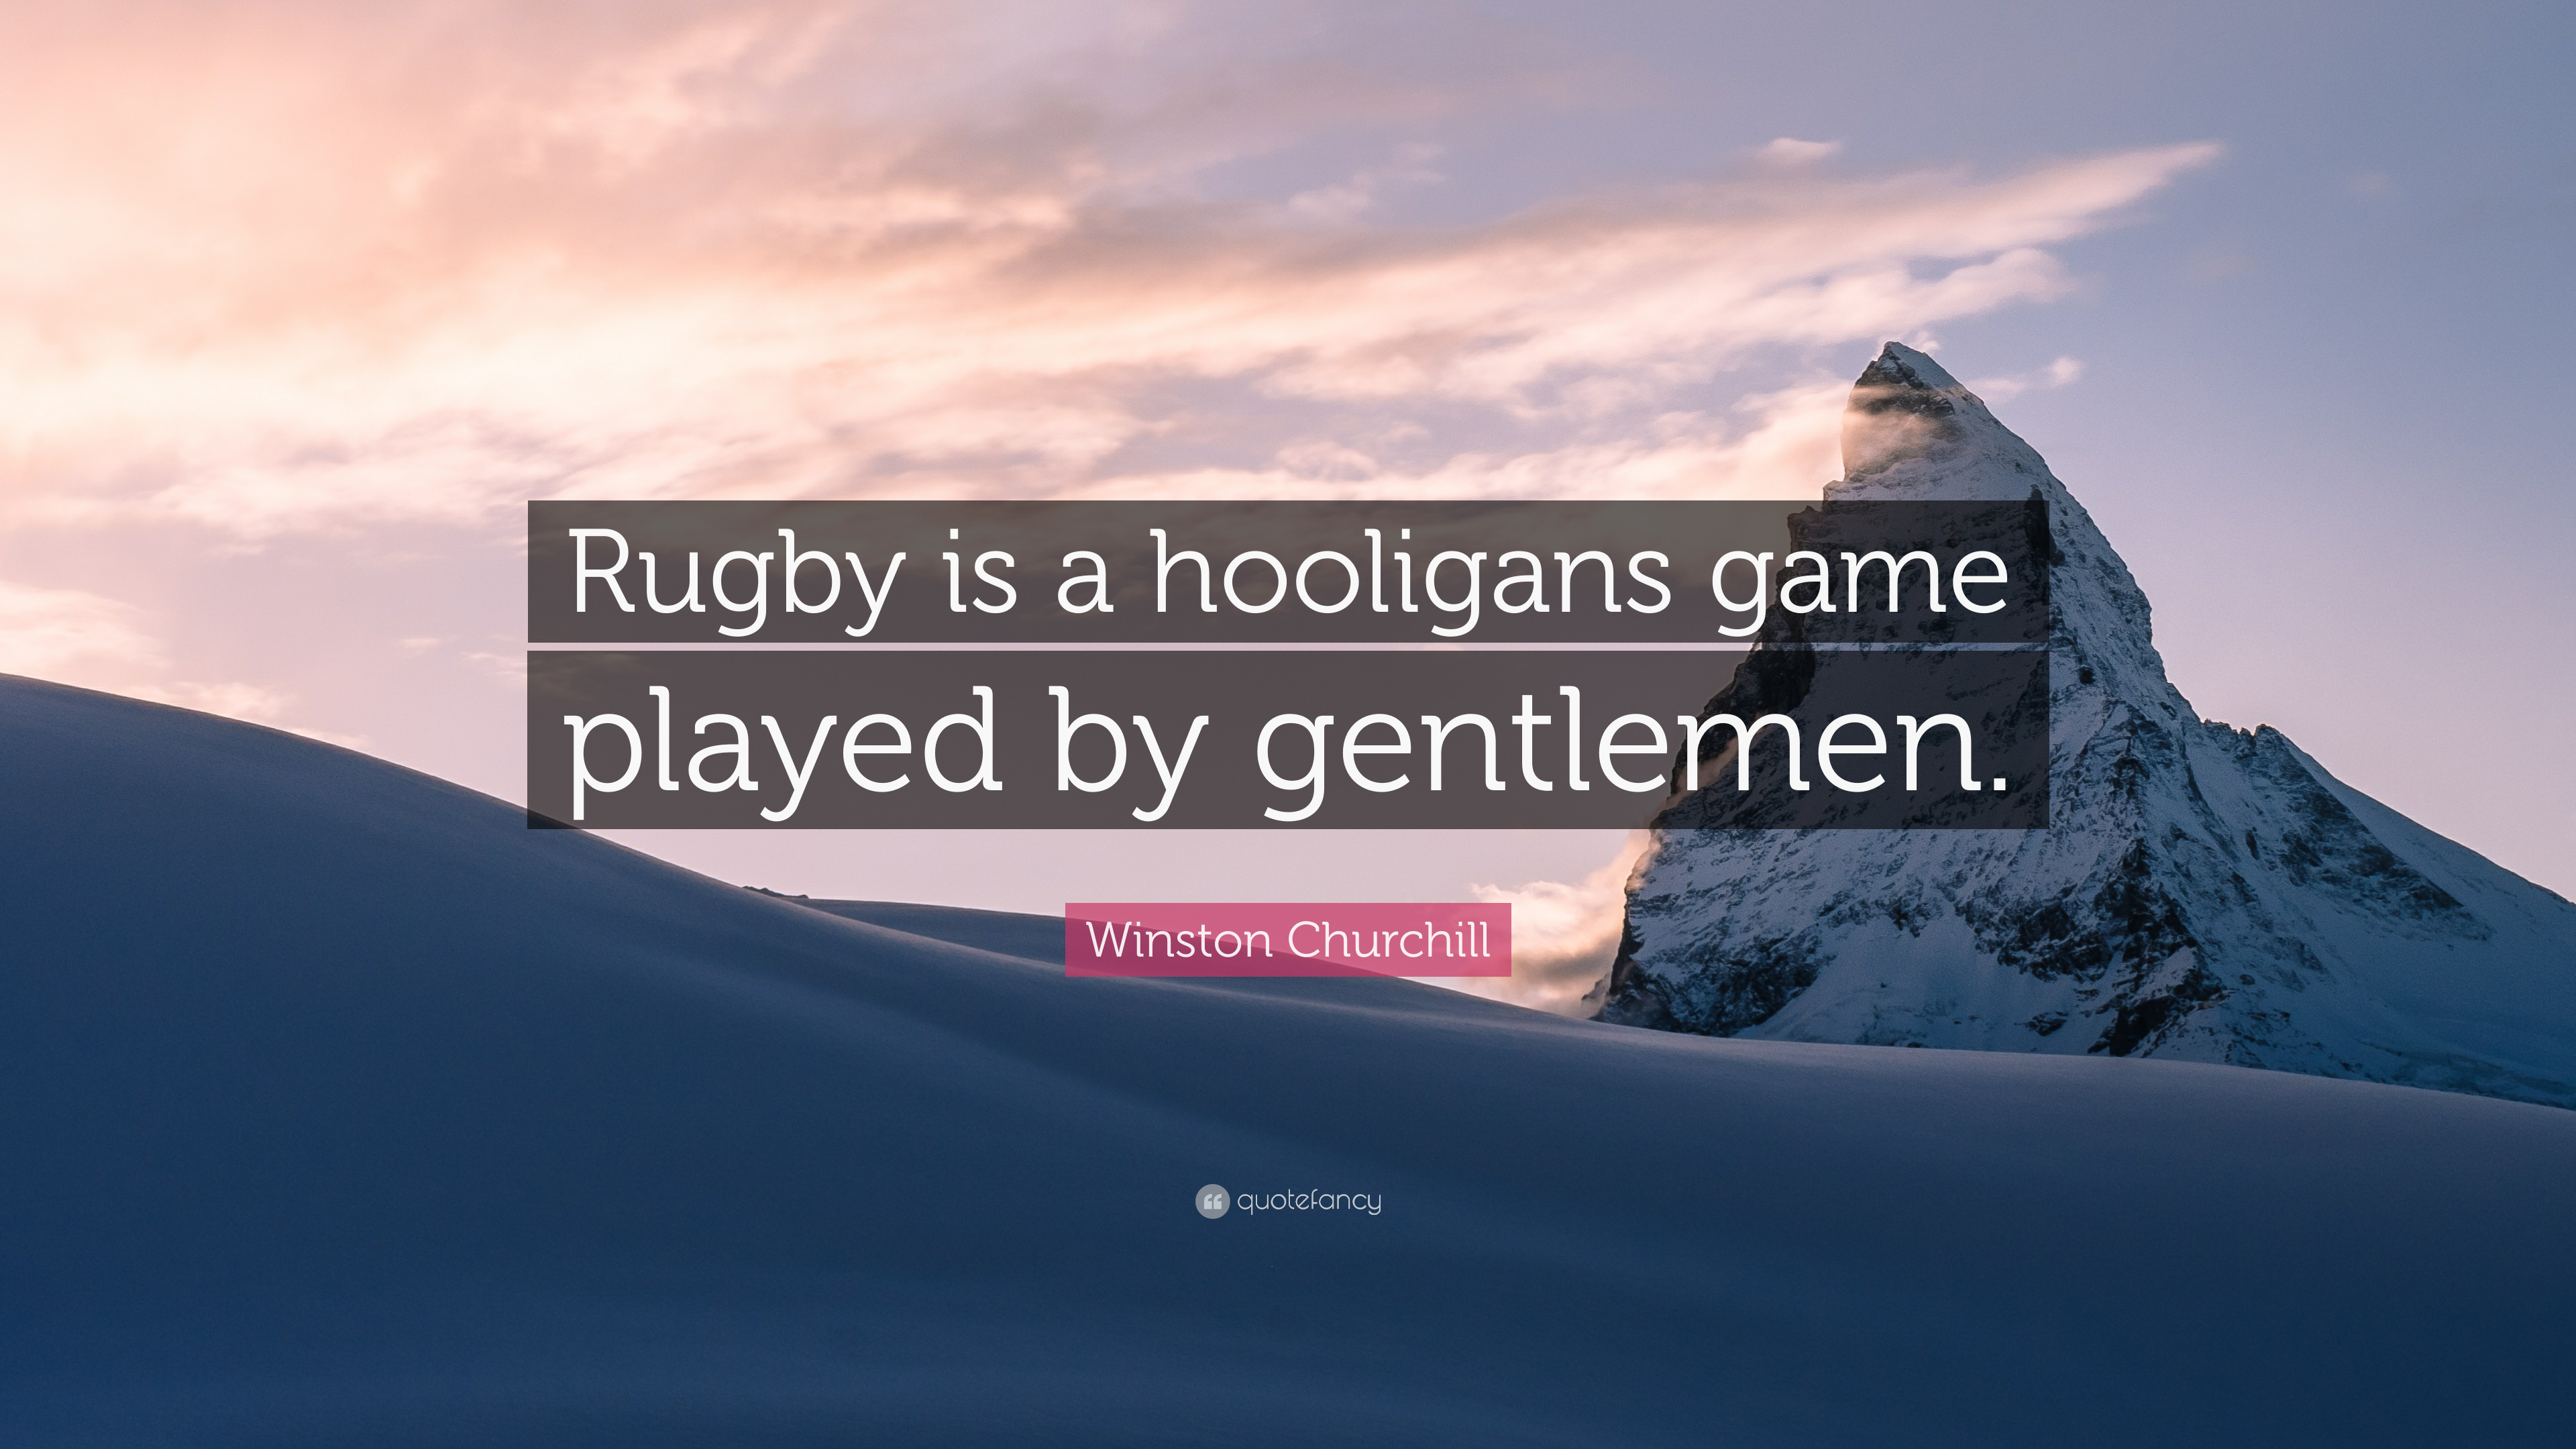 rugby, a game for hooligans played by gentlemen - YouTube